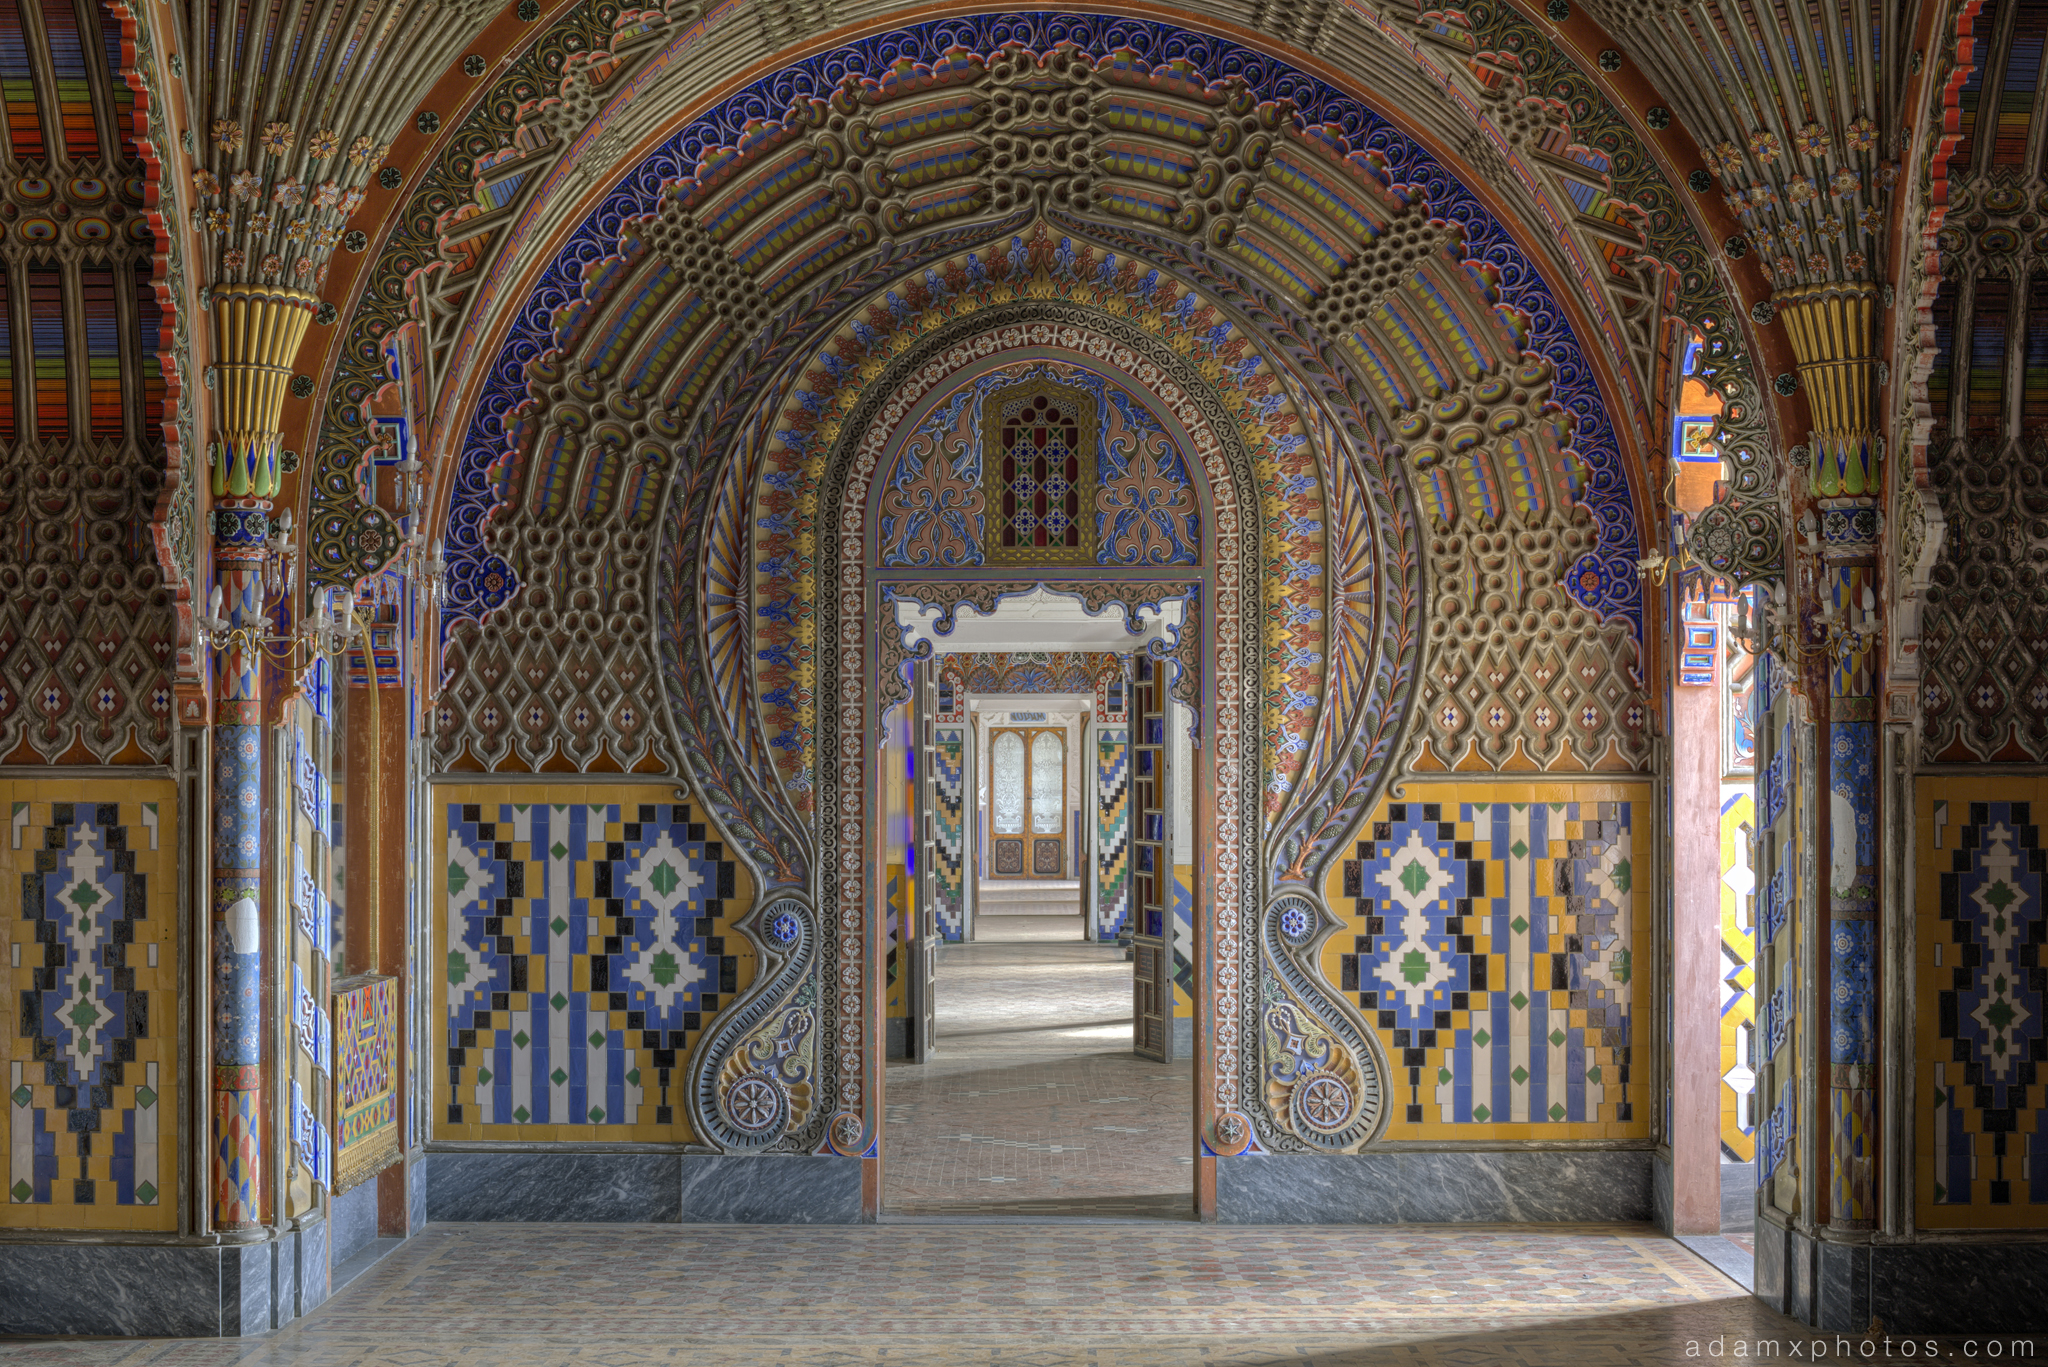 The Peacock Room colours fans tiles ornate intricate door ceiling Non Plus Ultra Fairytale Castle of Sammezzano Castello di Sammezzano Urbex Adam X Urban Exploration photo photos report decay detail UE abandoned Ornate Moorish tiling tiled derelict unused empty disused decay decayed decaying grimy grime